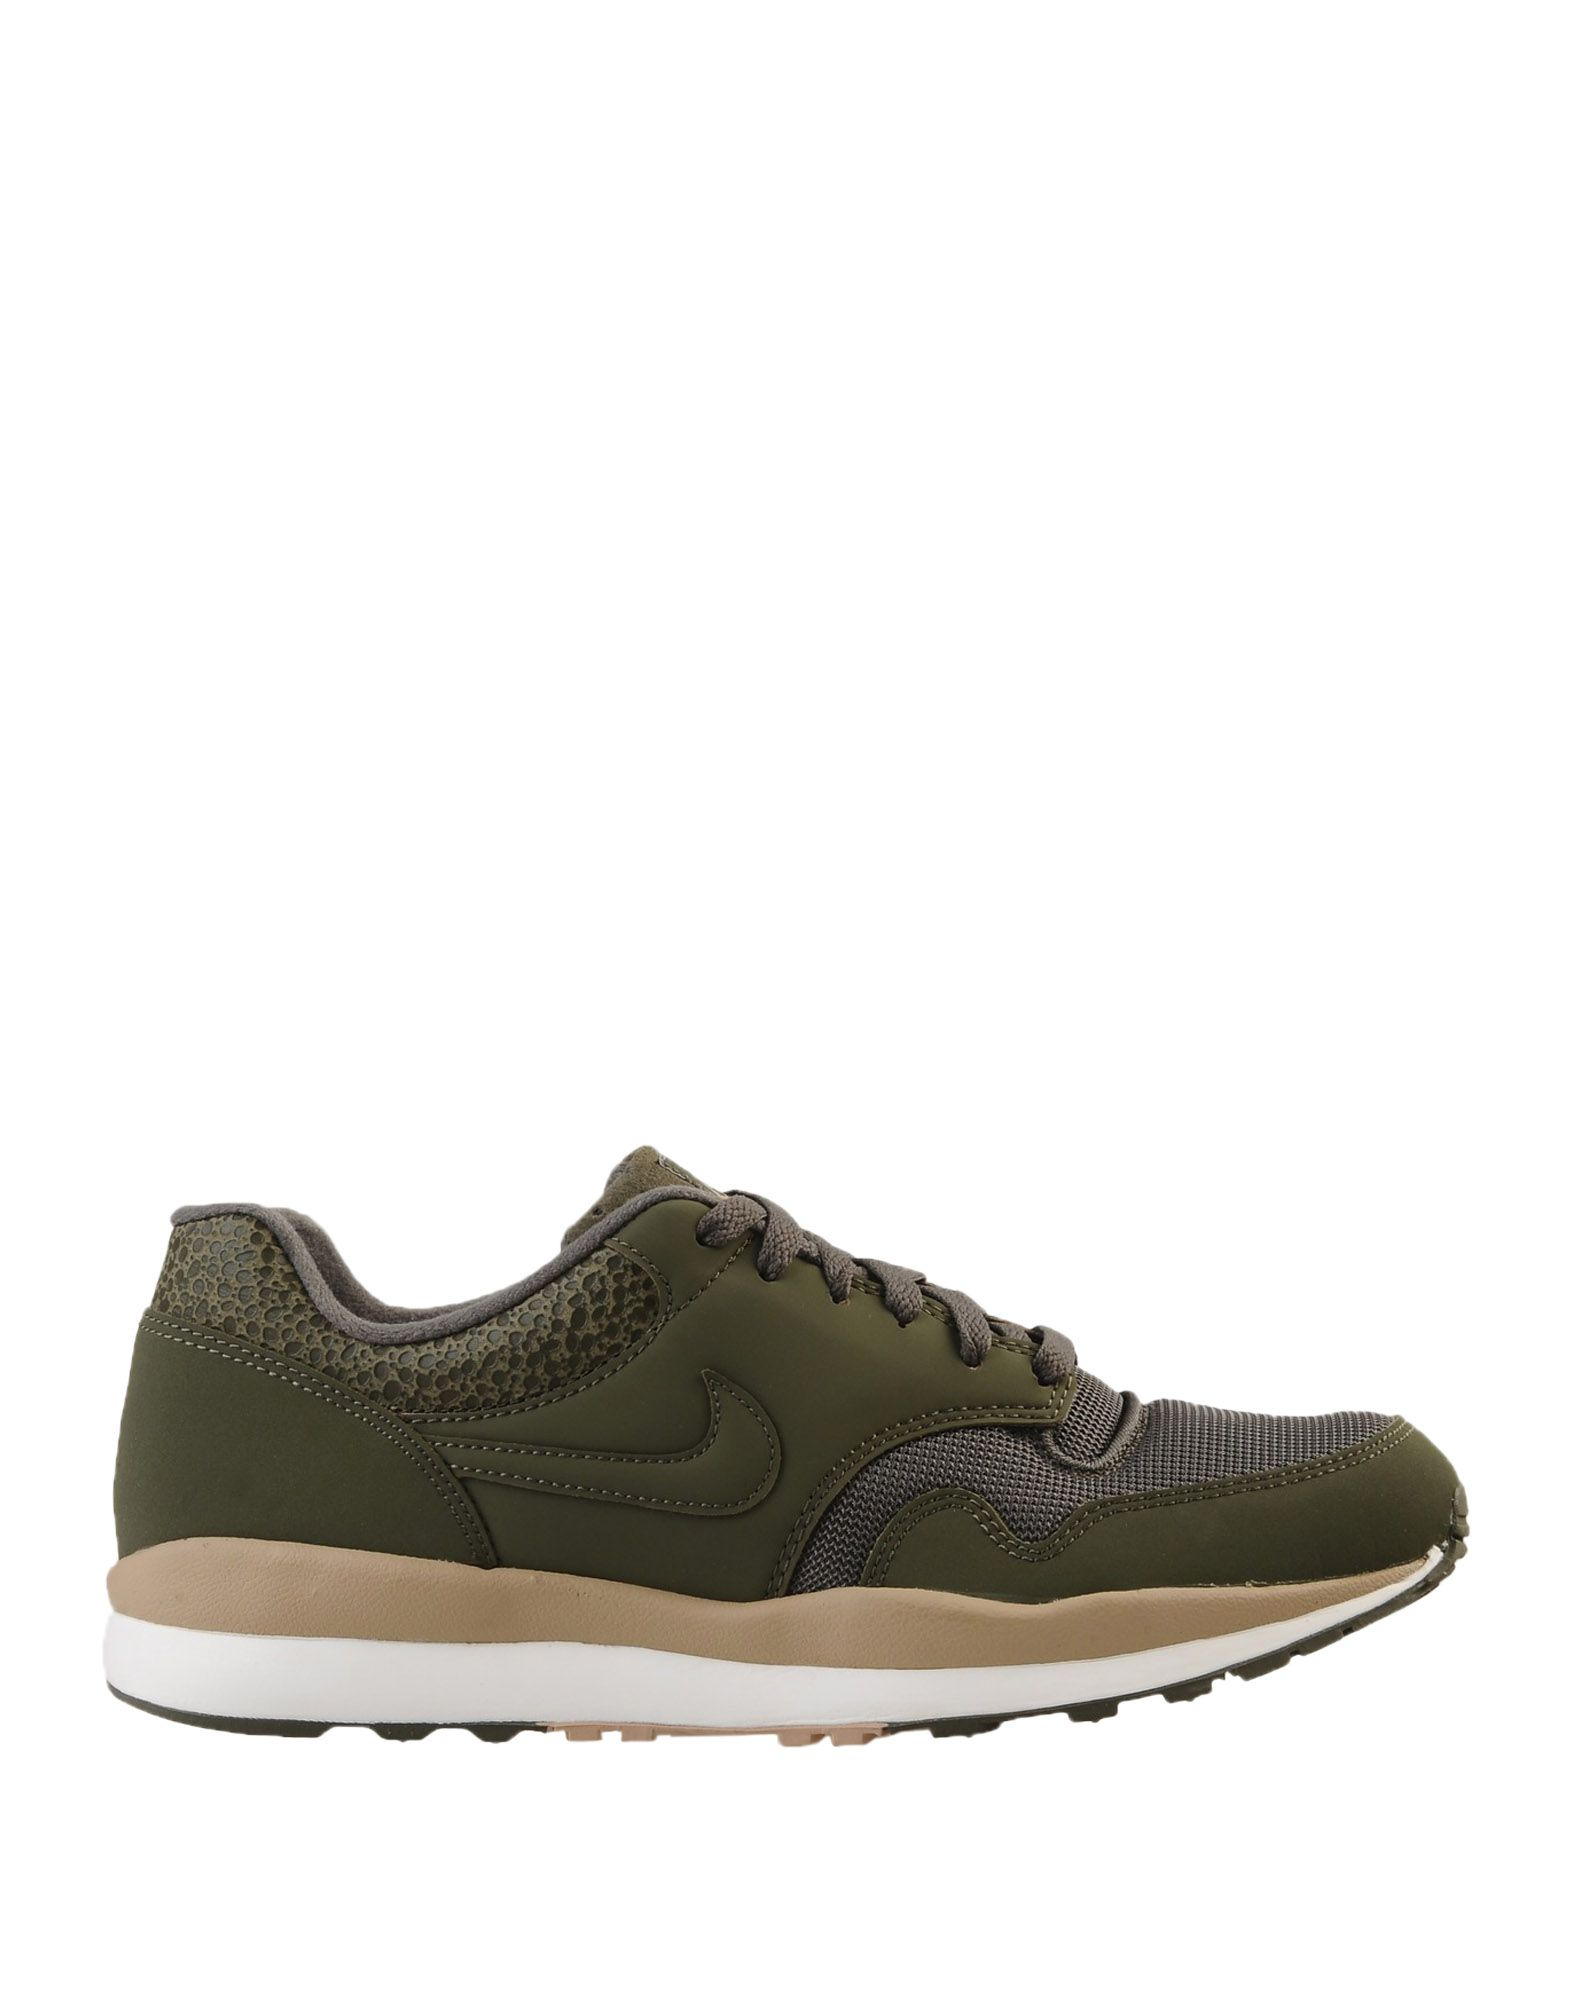 Nike  Sneakers  Air Safari - Sneakers  - Men Nike Sneakers online on  United Kingdom - 11571399JC d5a432